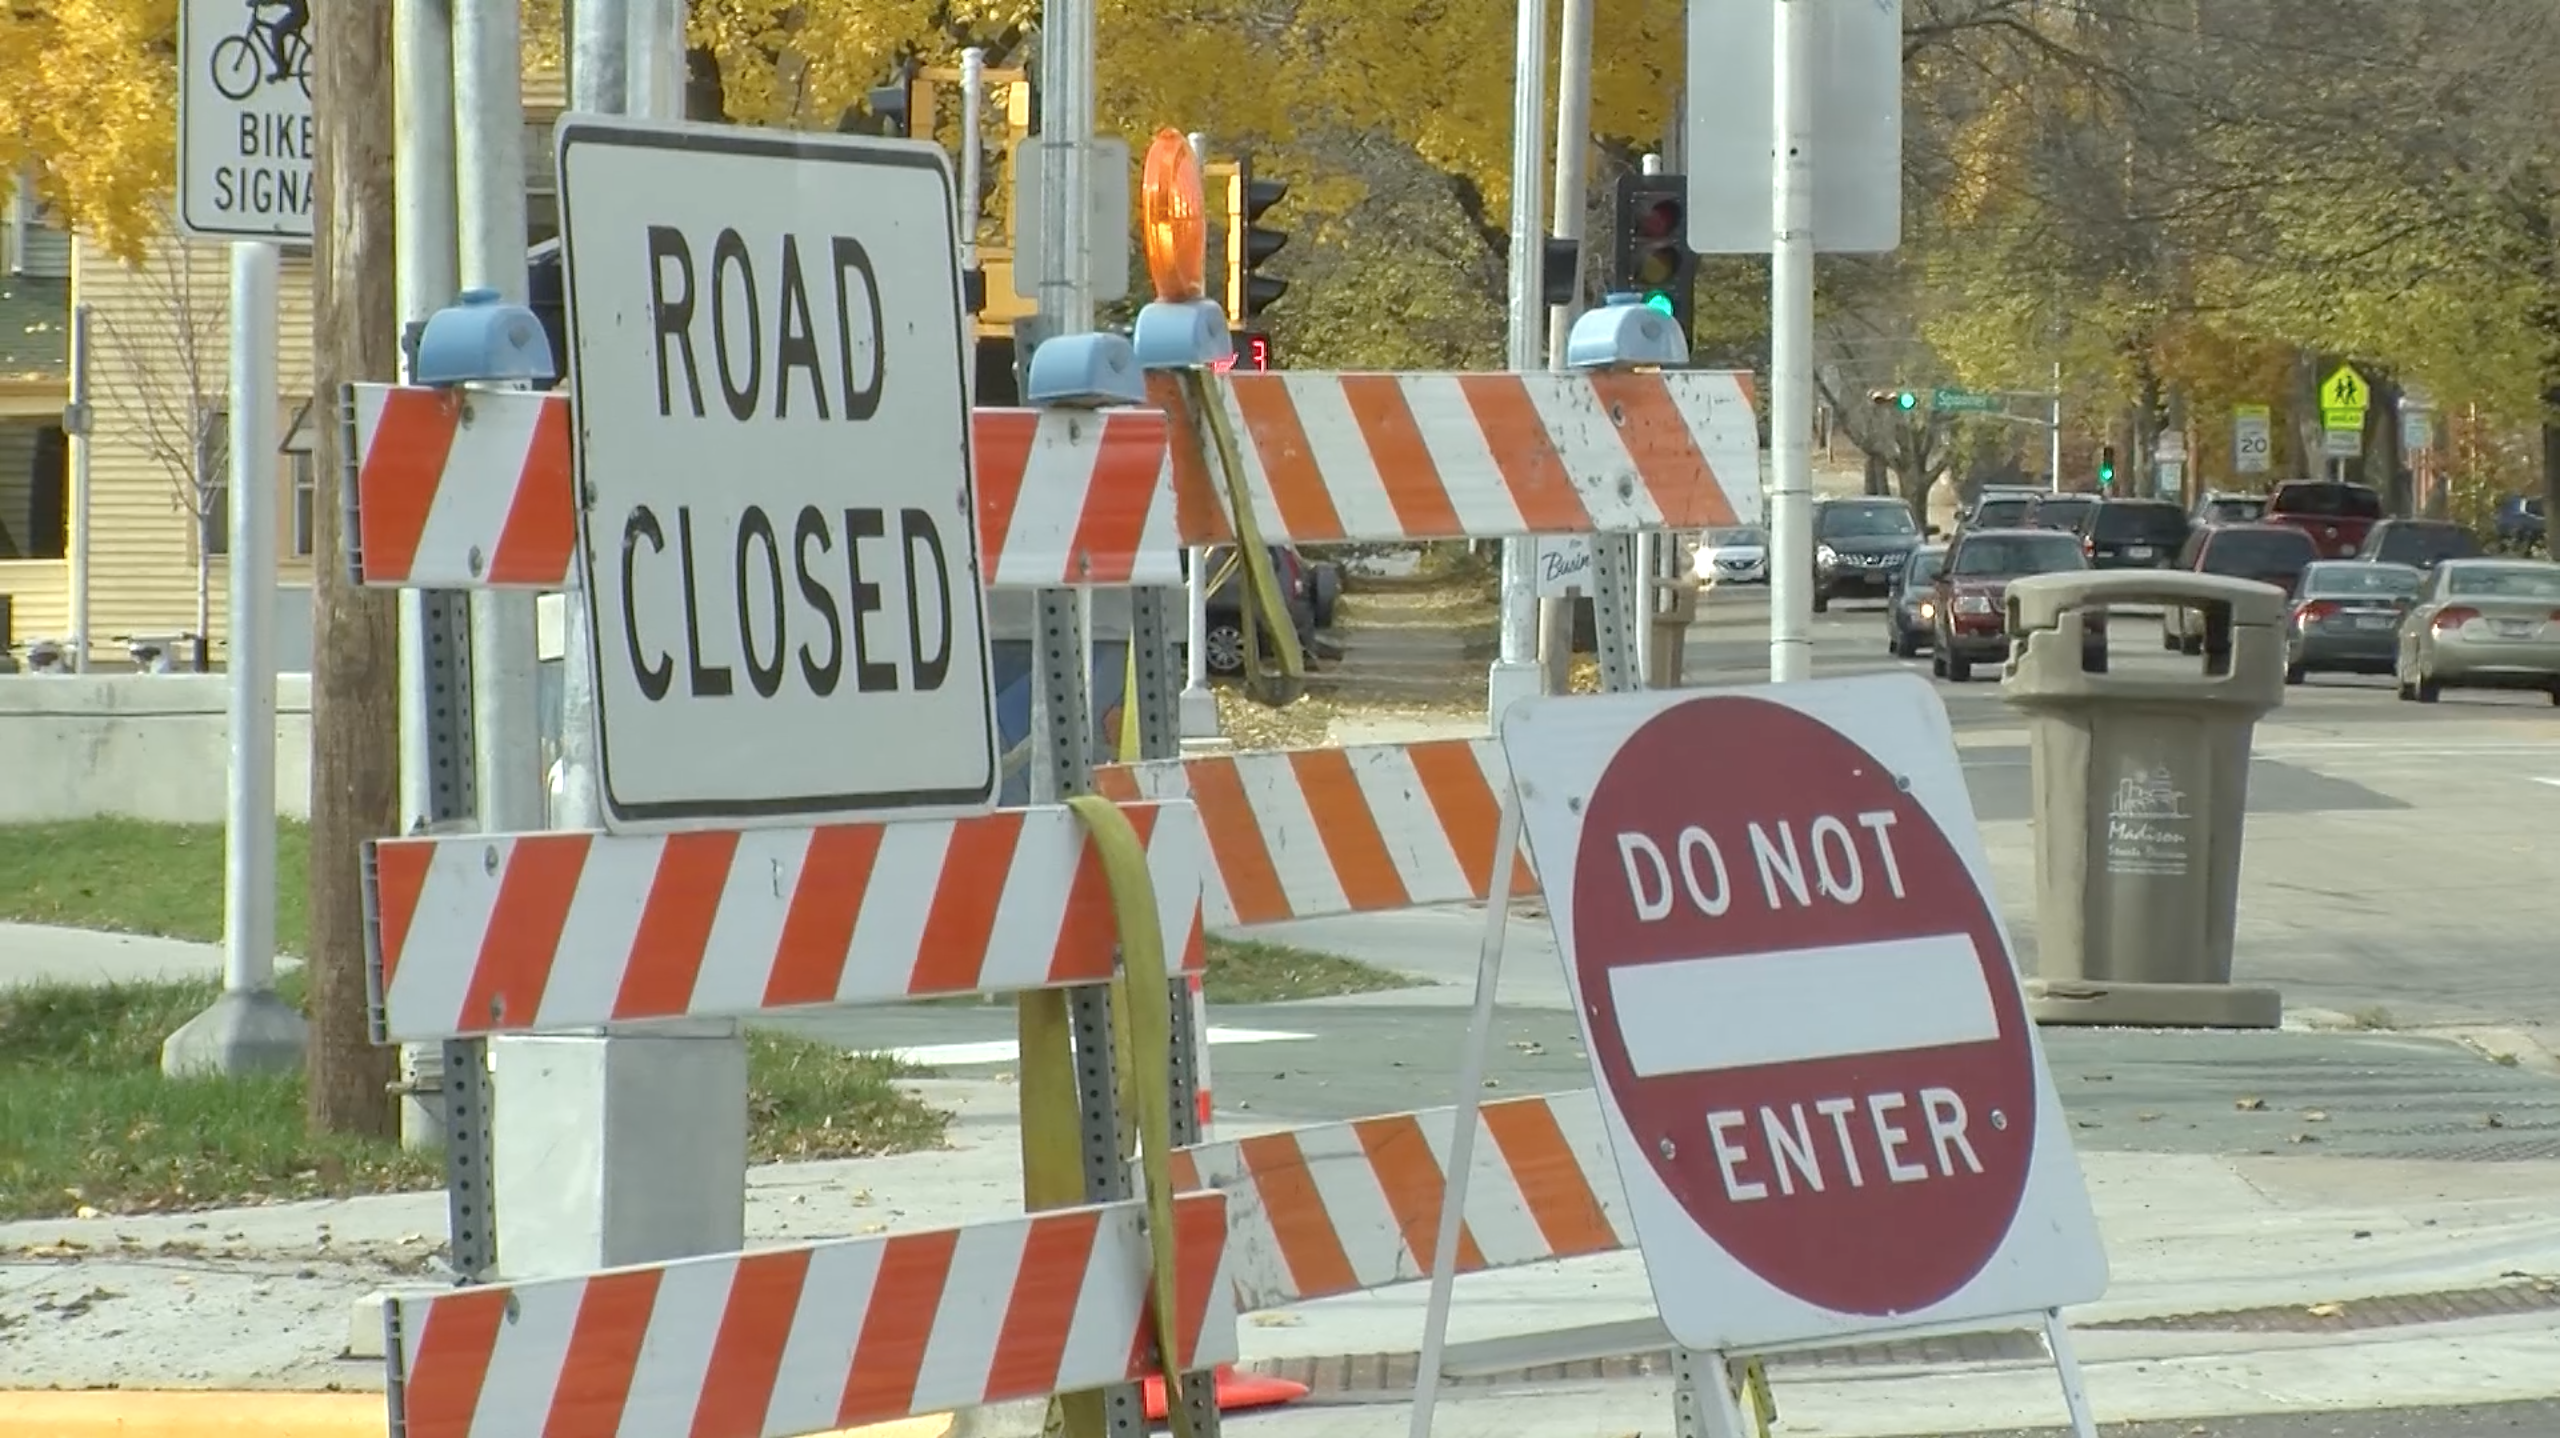 Monroe Street reconstruction negatively impacted local community